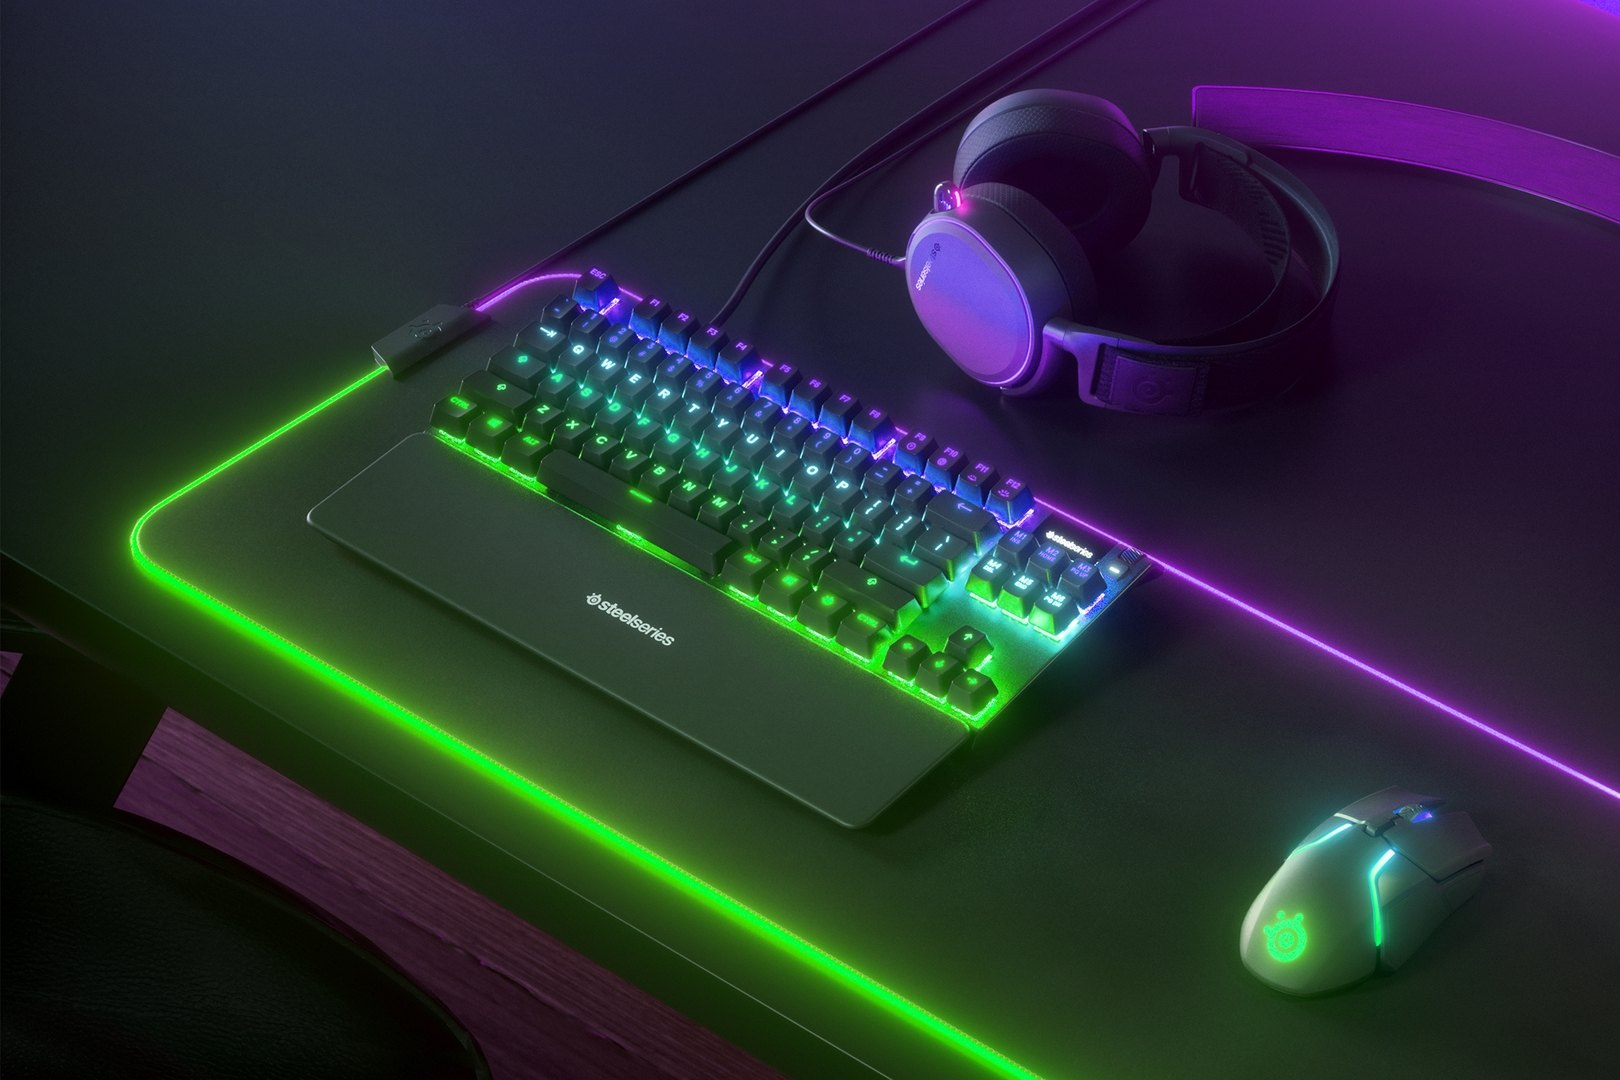 A shot of the Apex Pro TKL lit up in all its RGB glory.